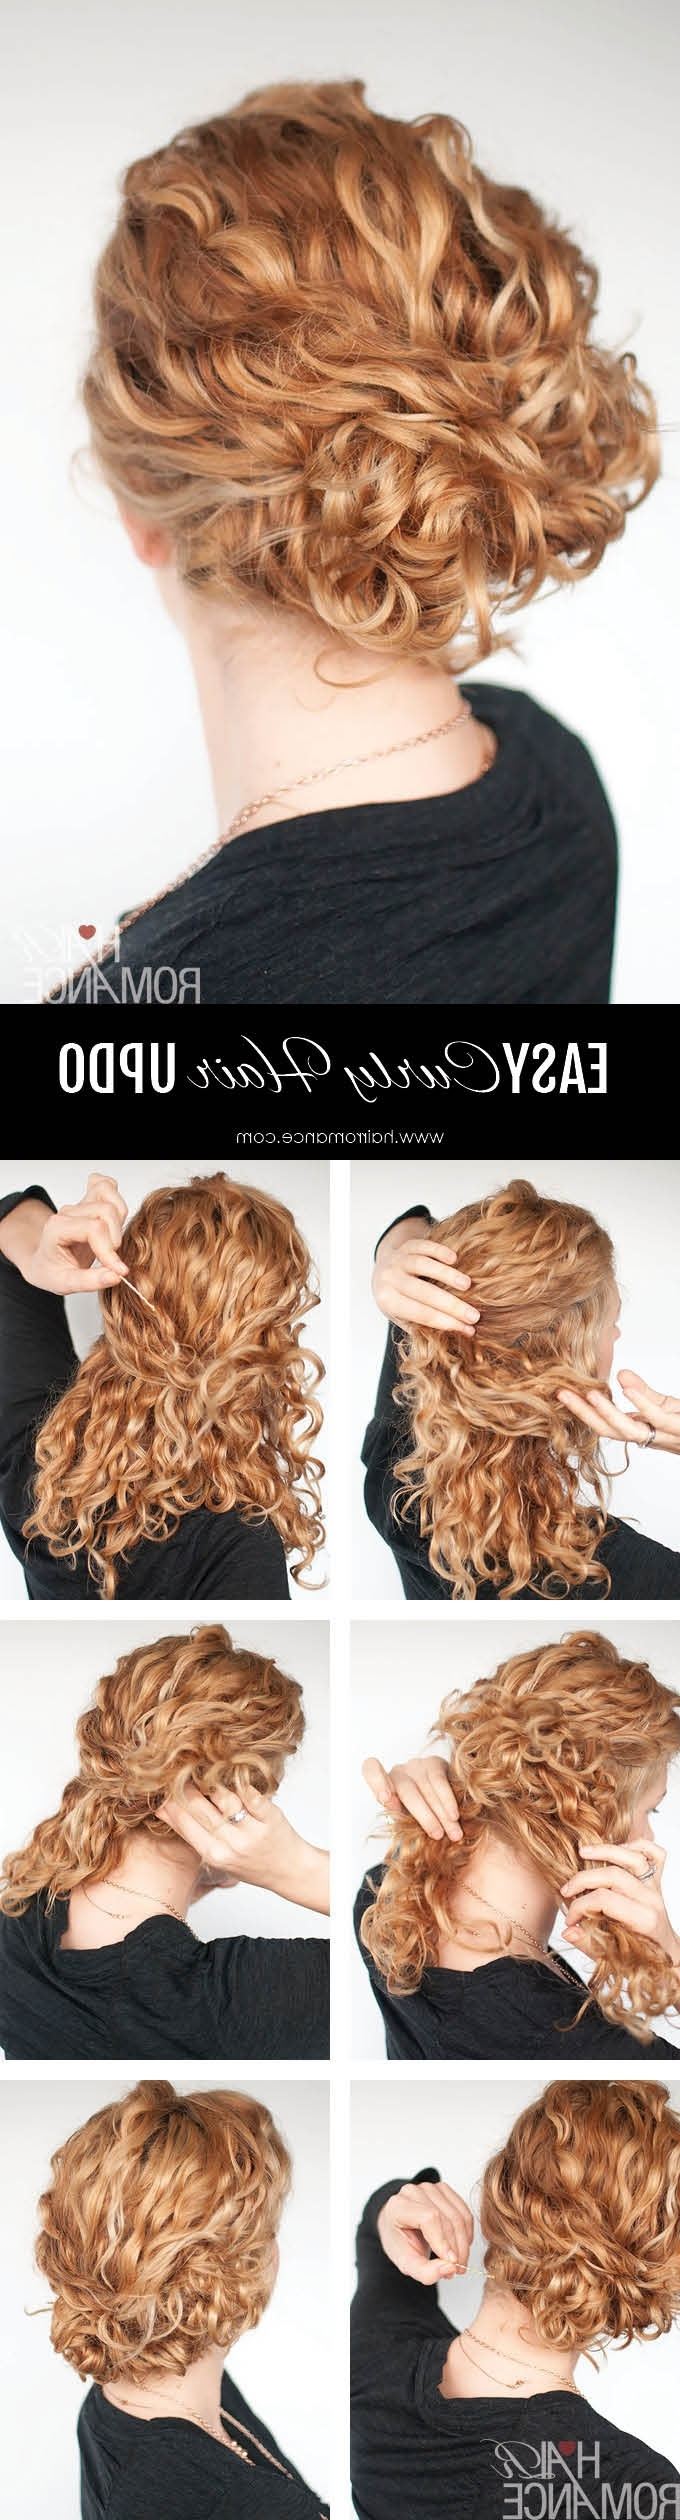 Super Easy Updo Hairstyle Tutorial For Curly Hair – Hair Romance In Updo Hairstyles For Long Curly Hair (View 11 of 15)